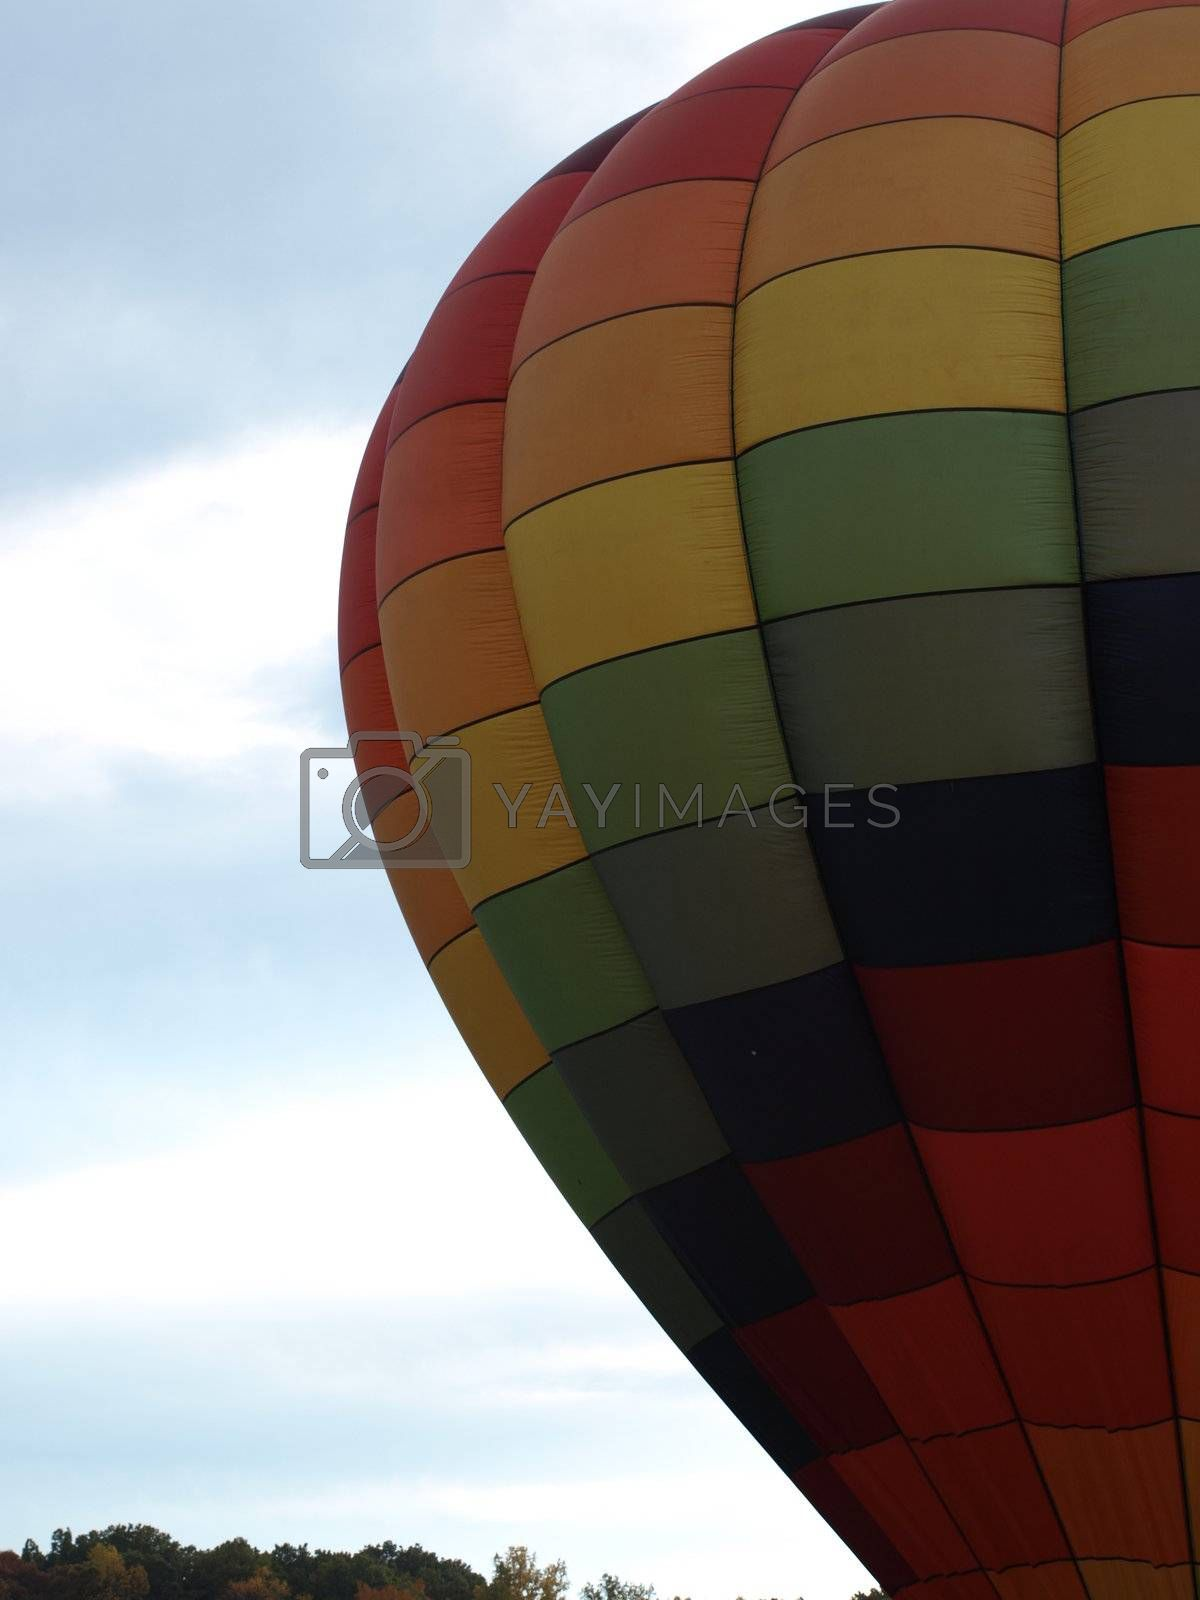 Hot air balloon by northwoodsphoto